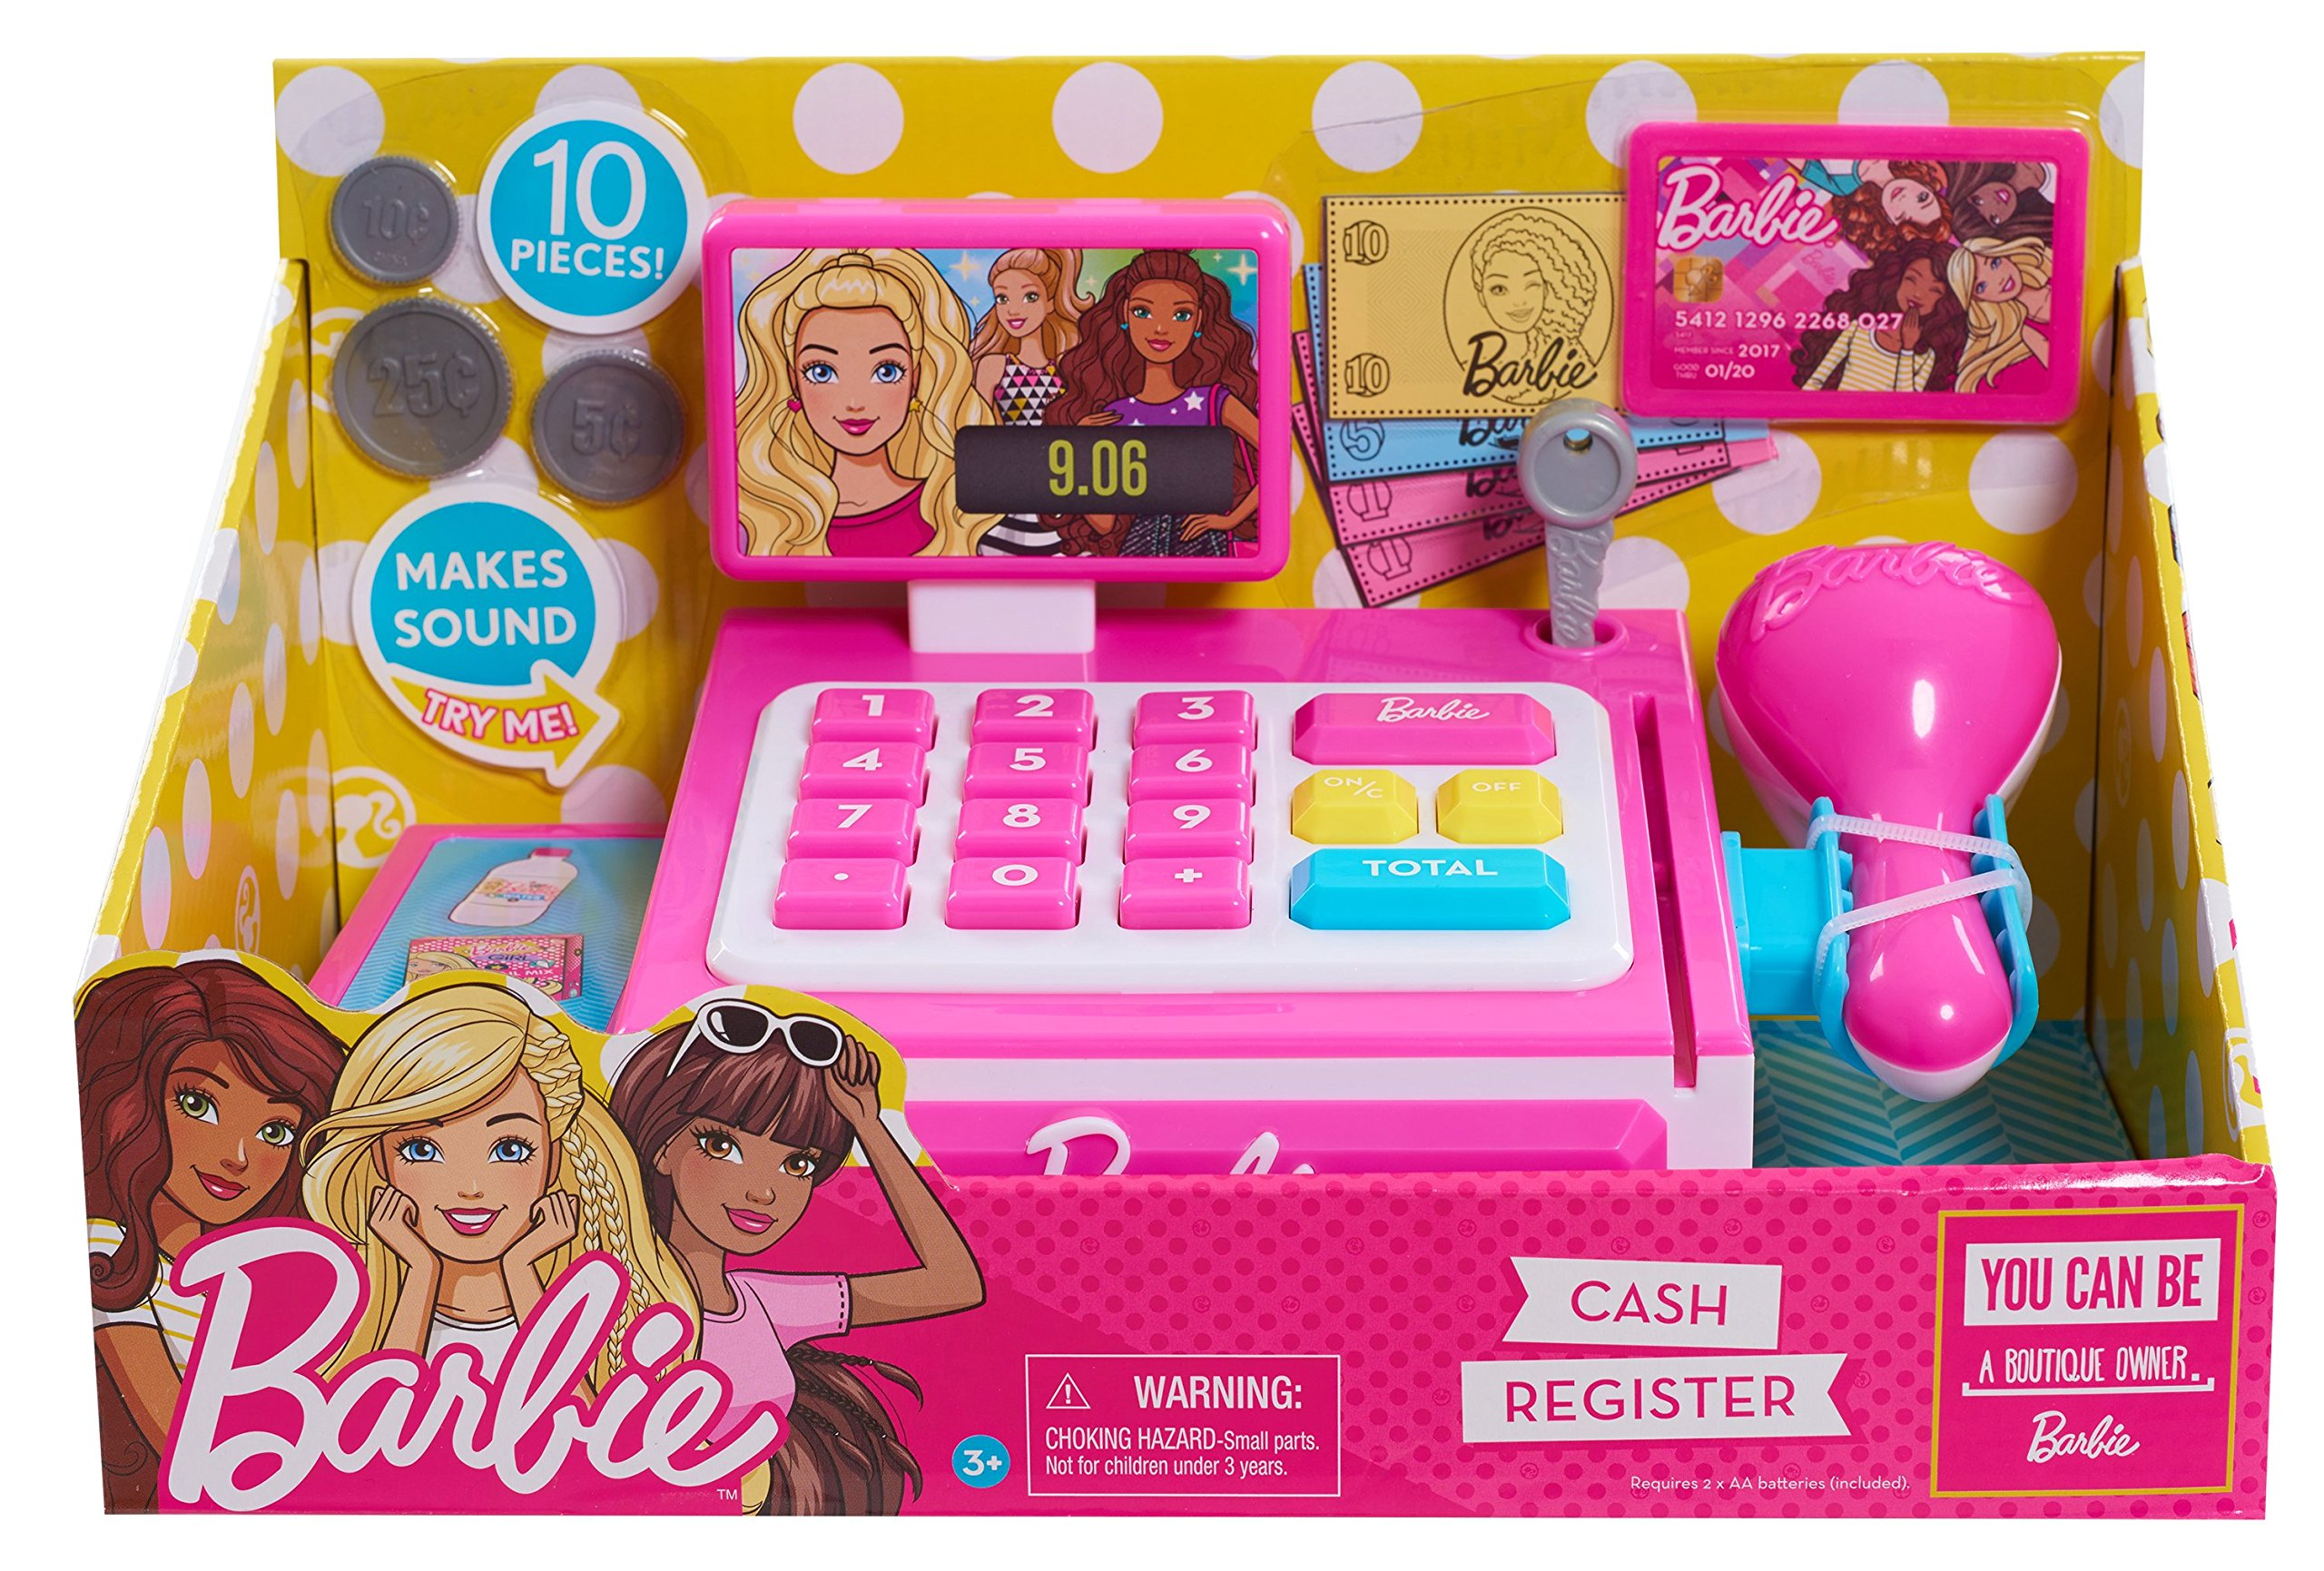 Barbie 62555 0 Small Cash Register by Barbie